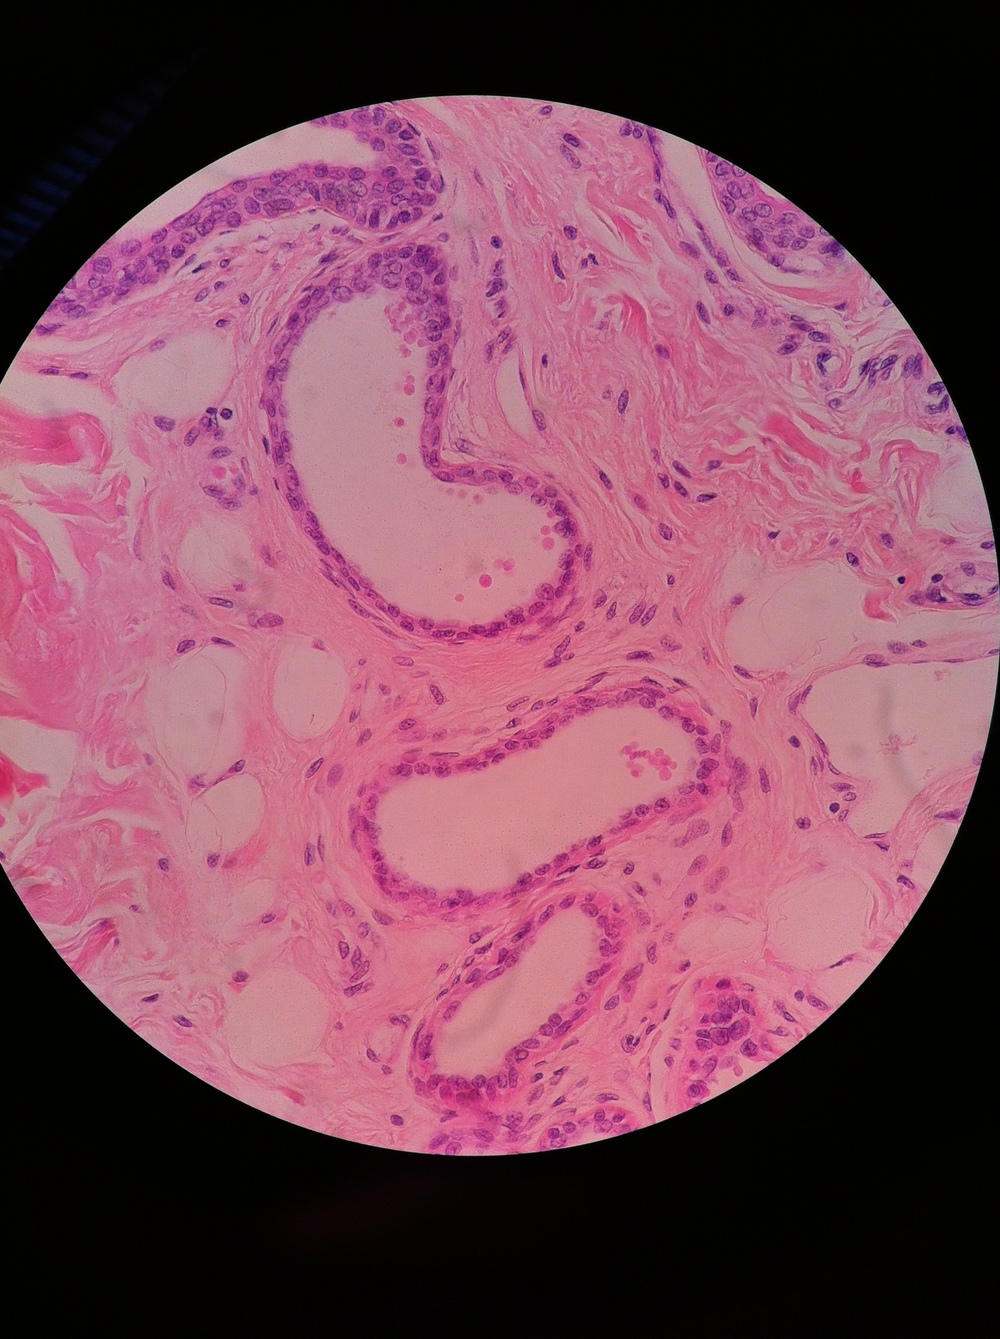 Apocrine Glands, Total Mag: 400X